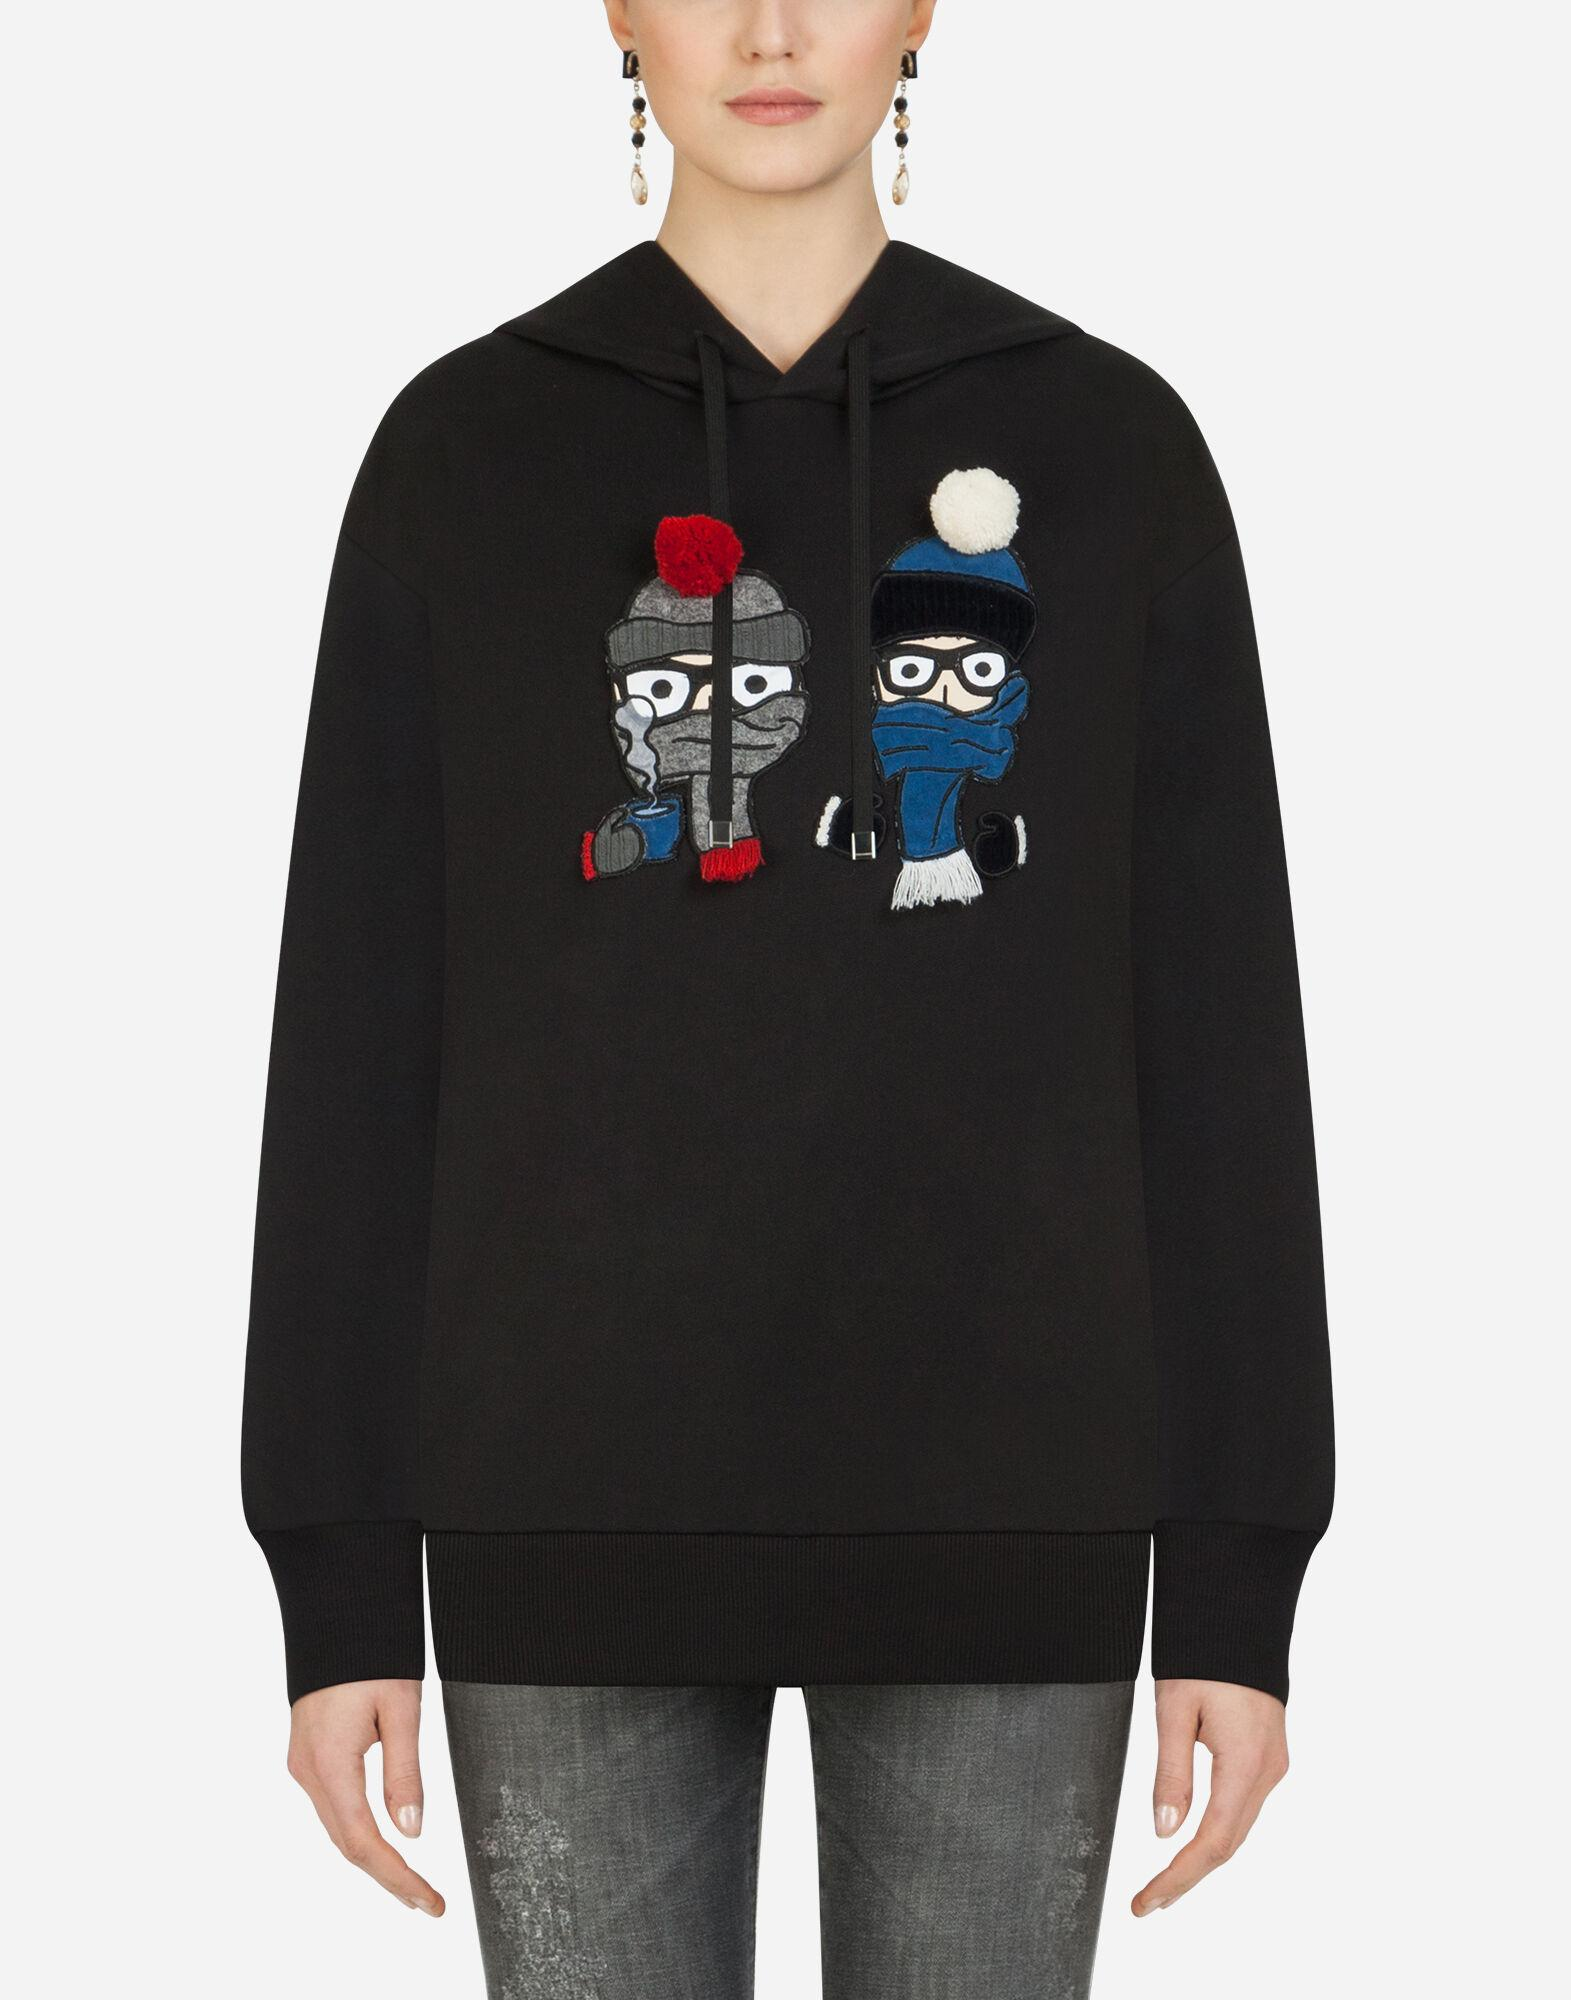 Hoodie with patches of the designers